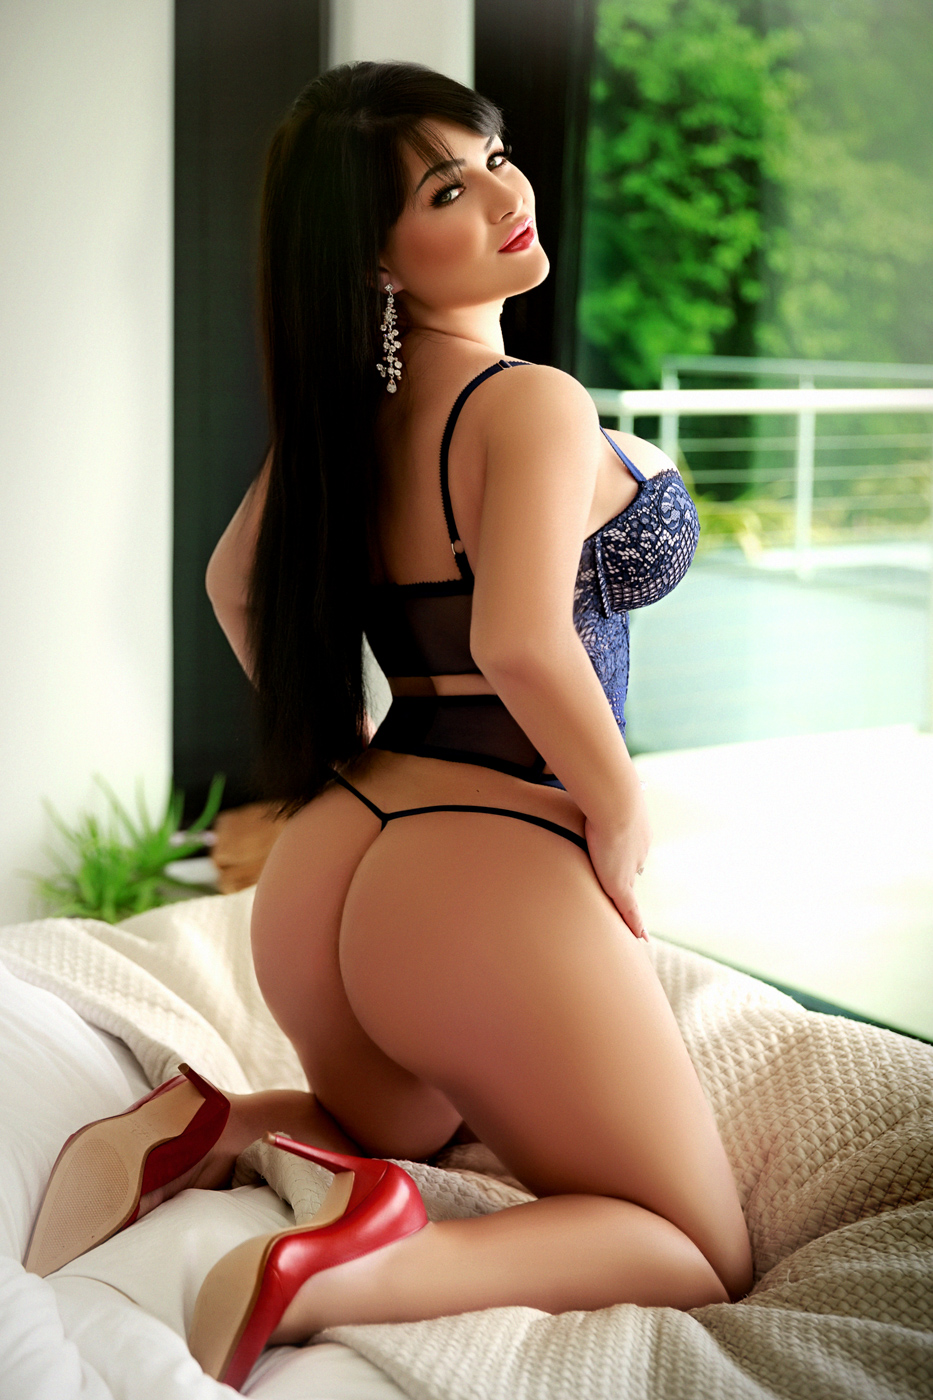 Le meilleur: prague privat escort